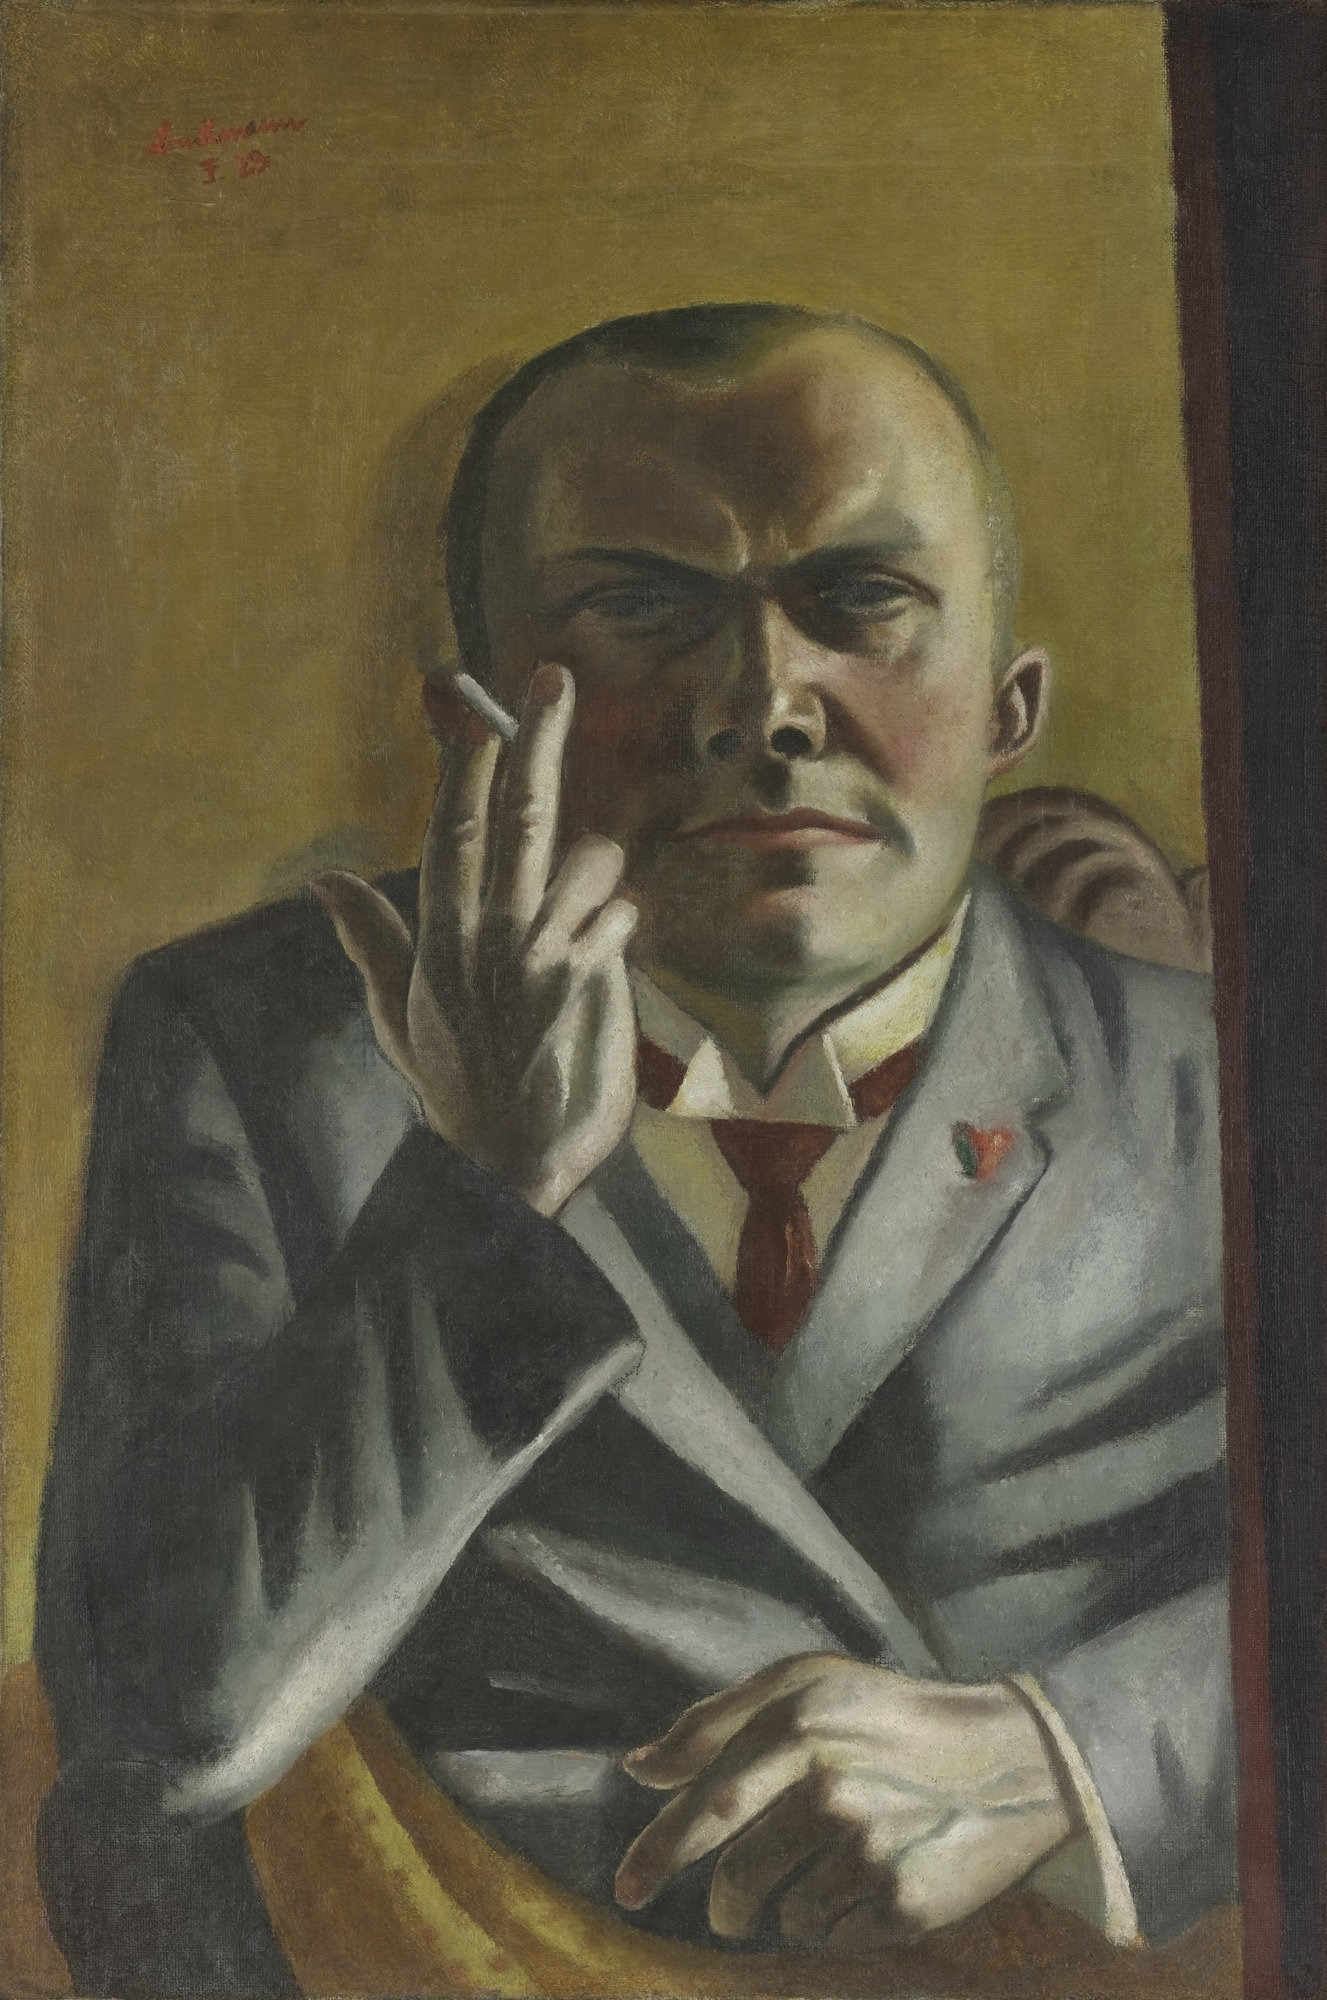 Max Beckmann, Self-Portrait with Cigarette, 1923, oil on canvas, 23 3/4 x 15 7/8 inches (MoMA)